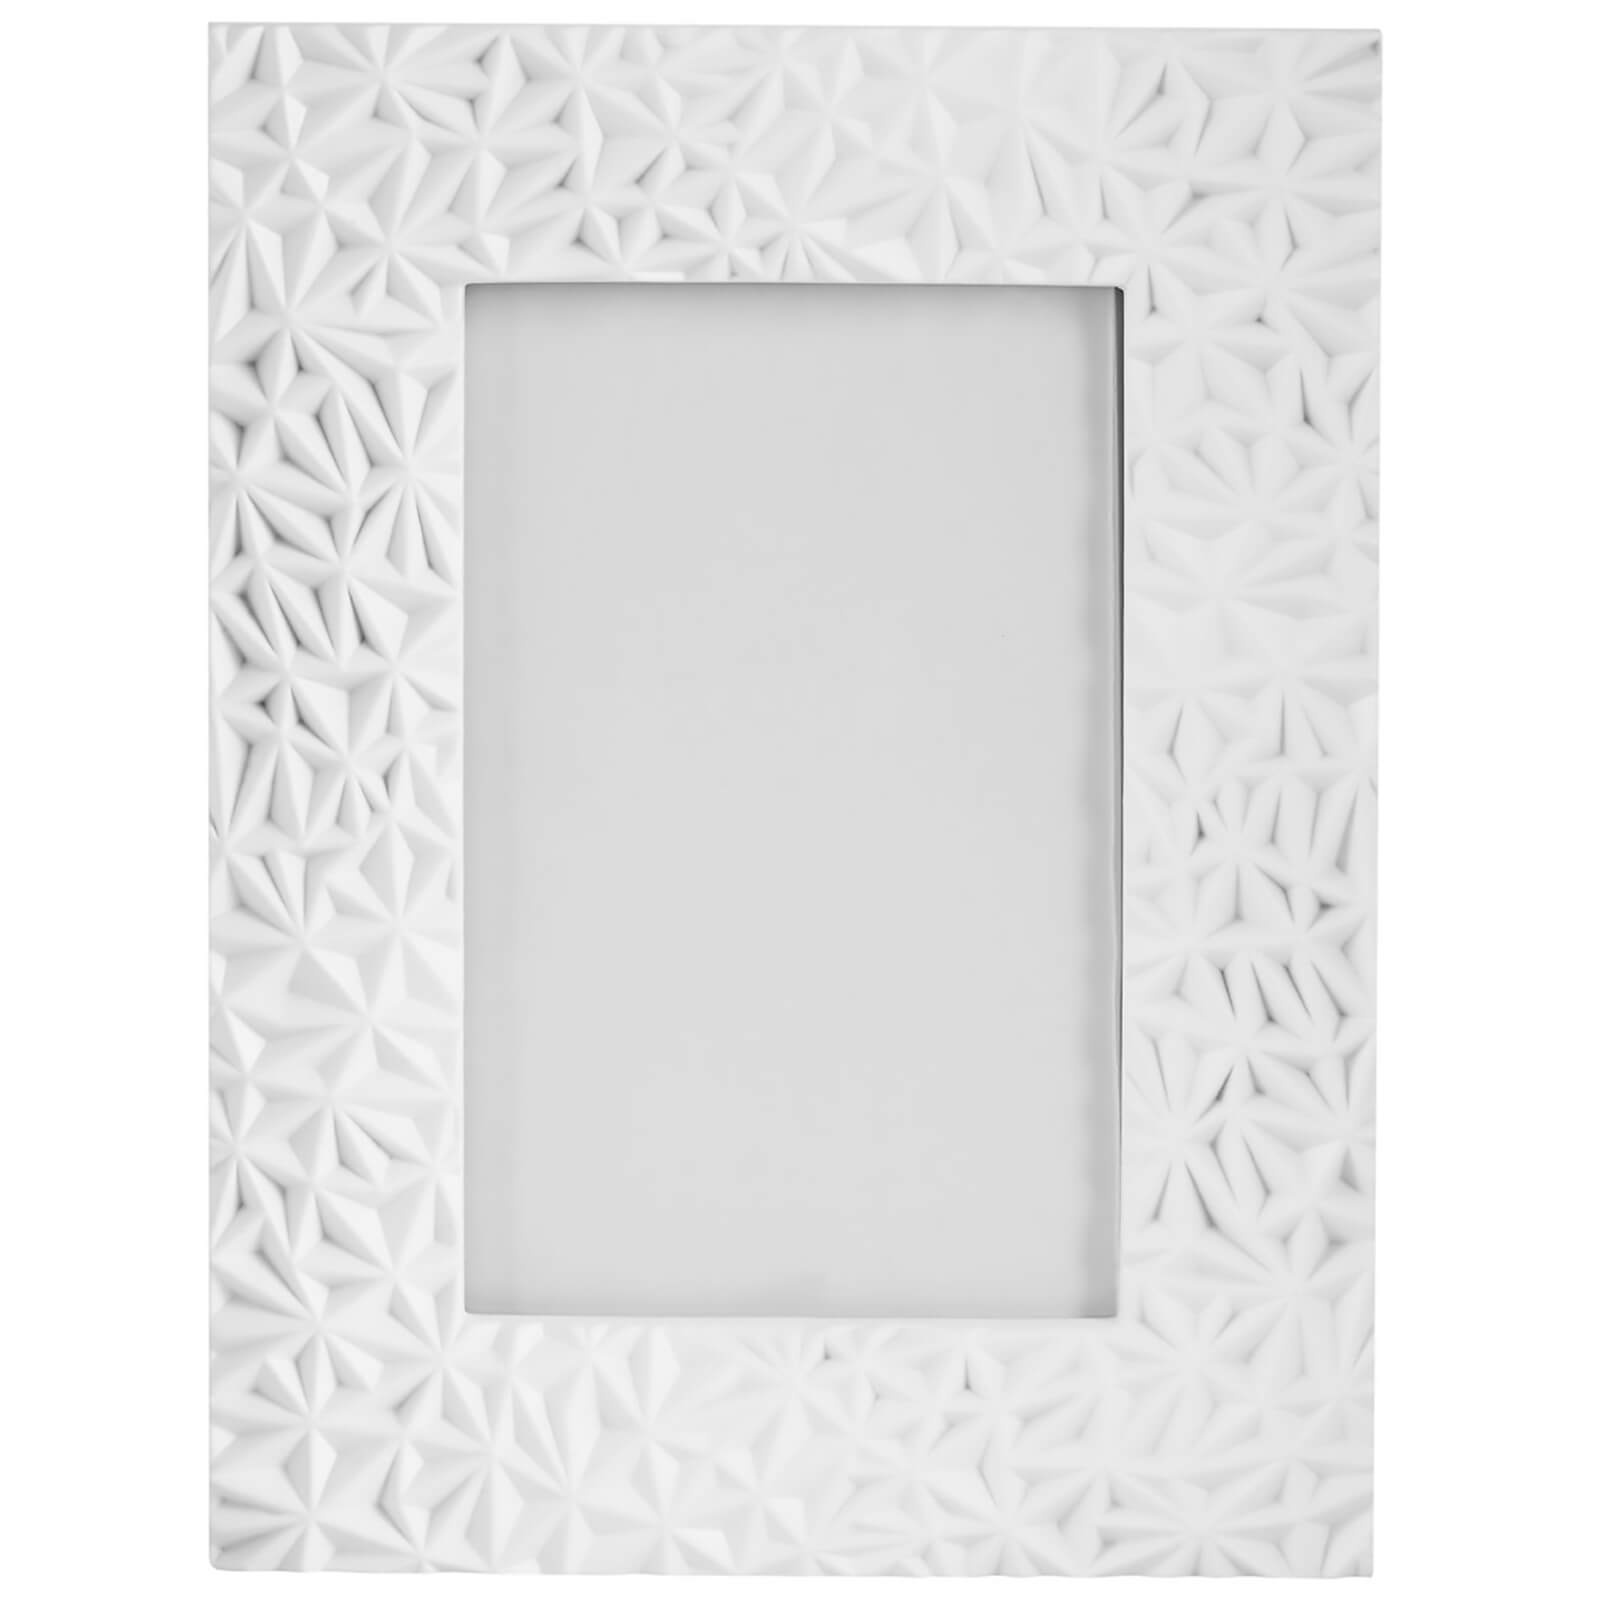 "Fifty Five South Geo Photo Frame - White 4"" x 6"""